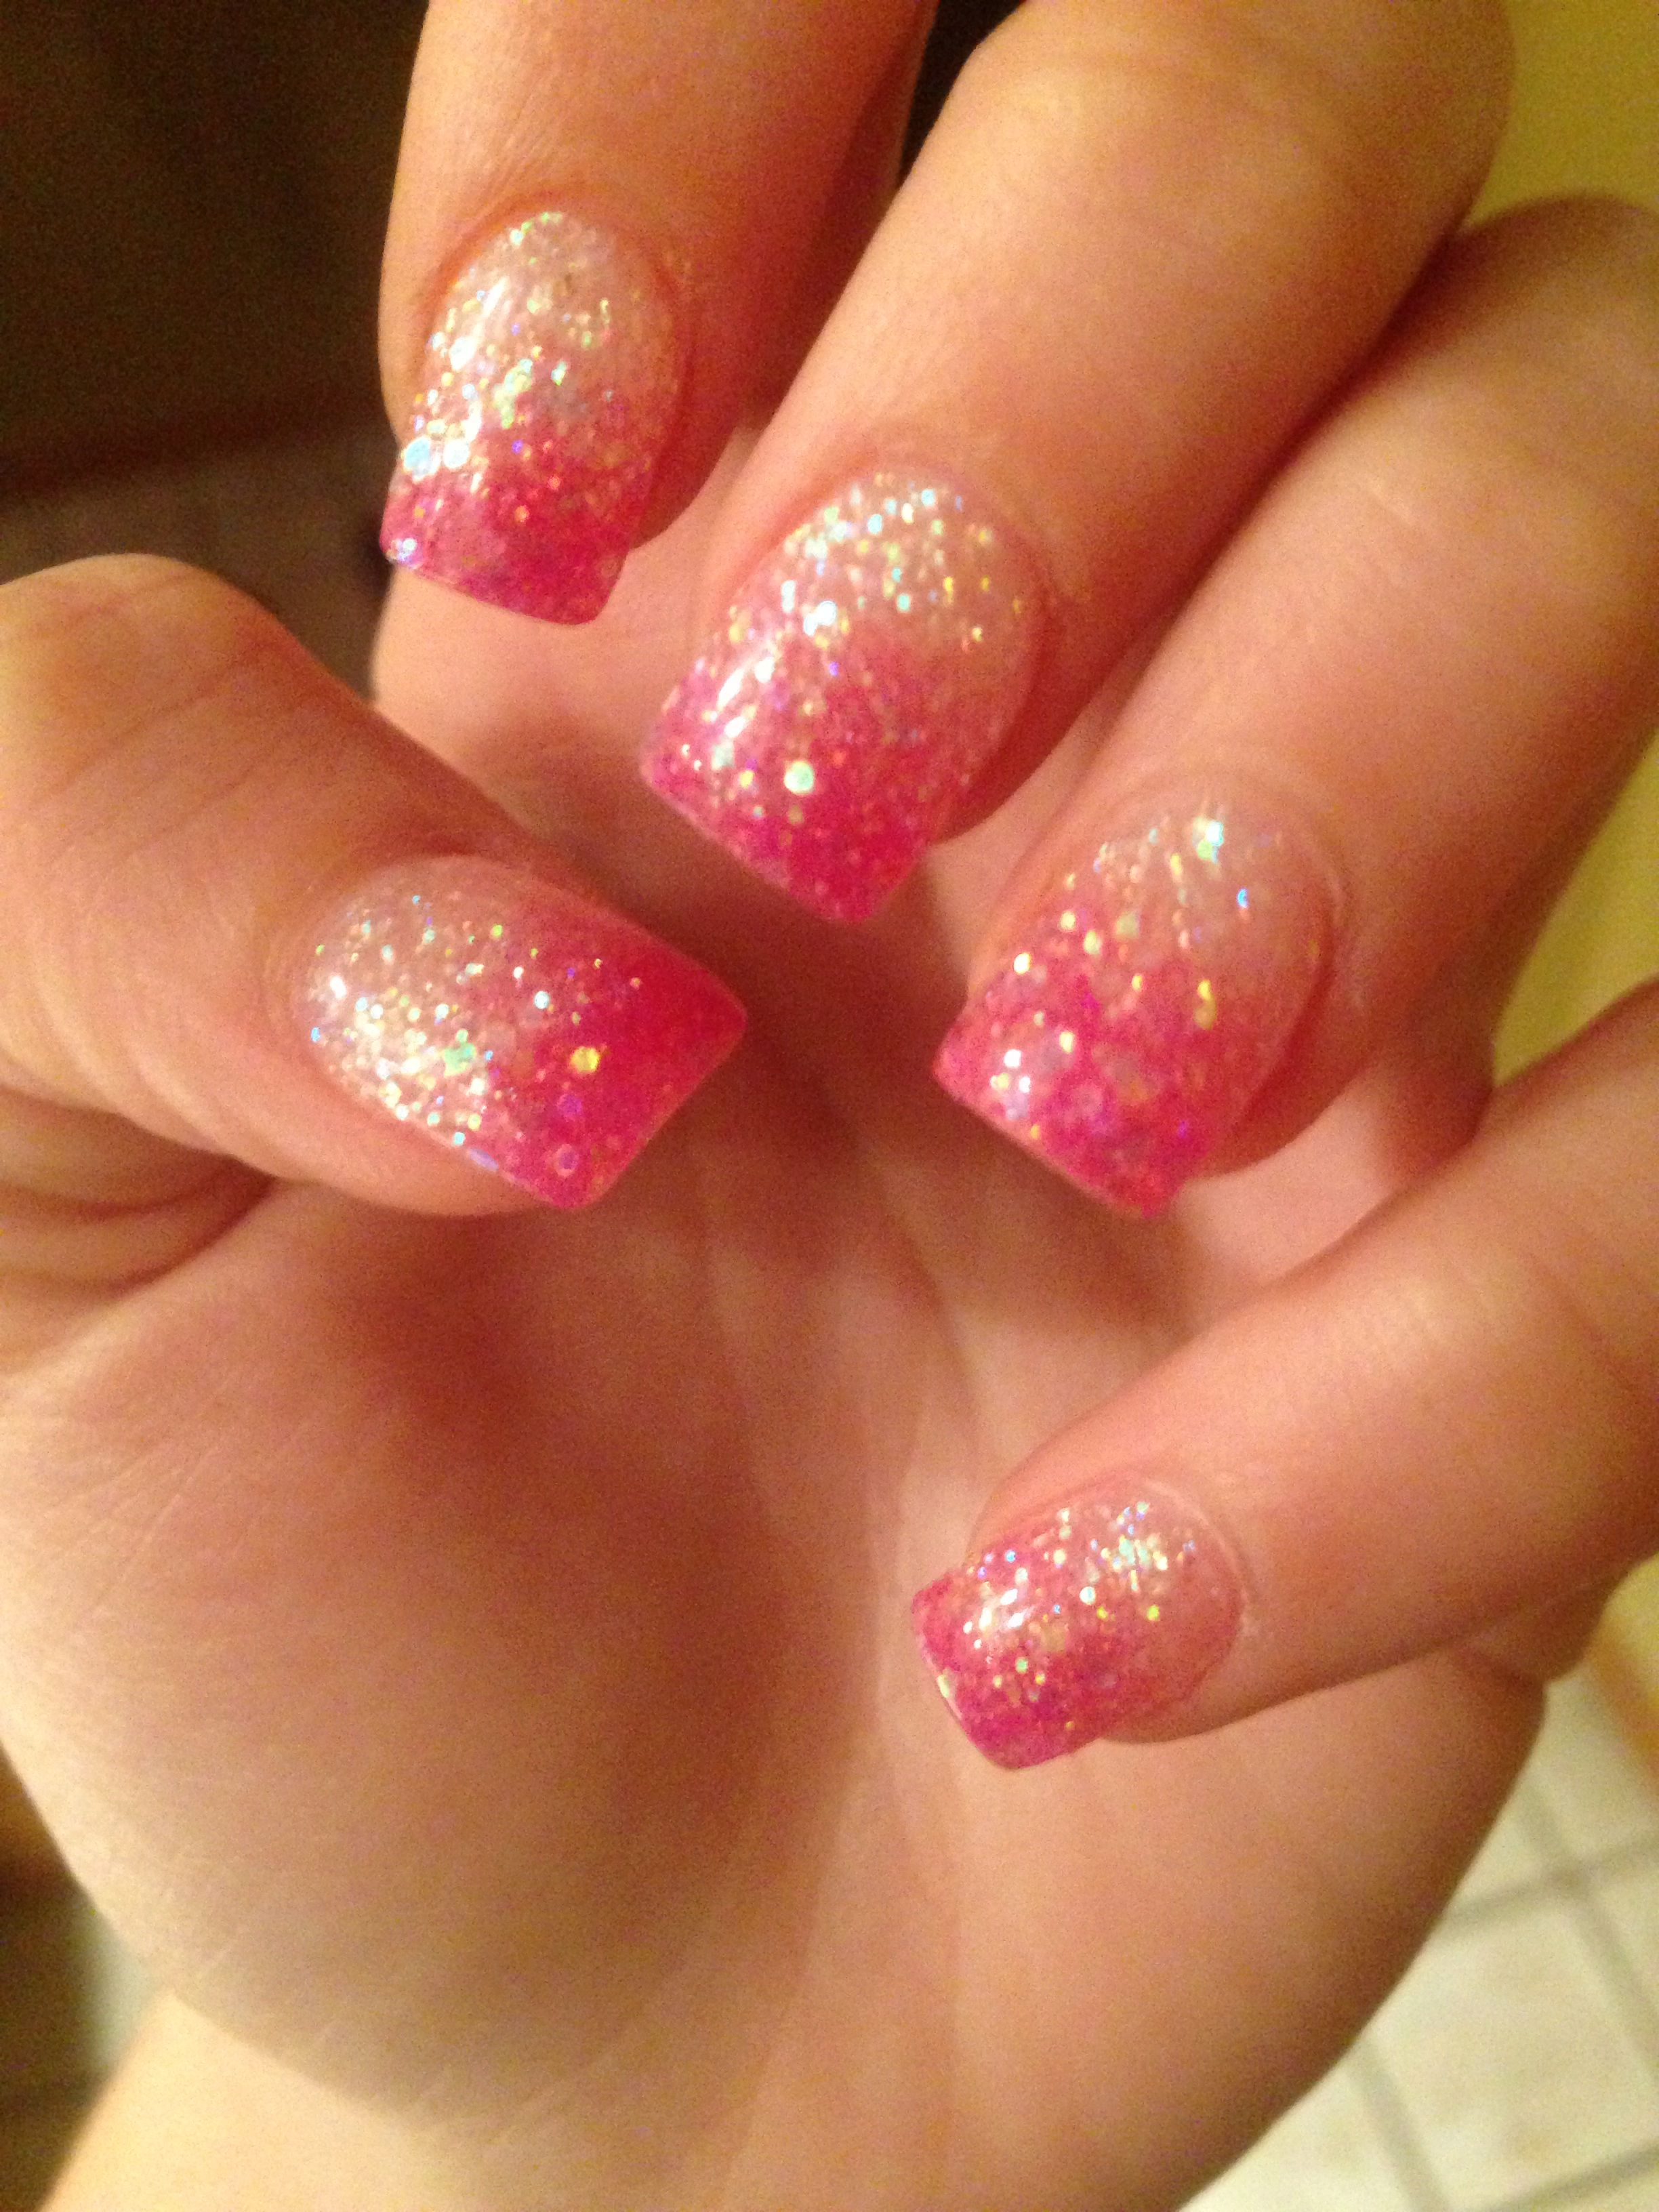 Pink sparkly prom nails  Nails  Pinterest  Prom nails